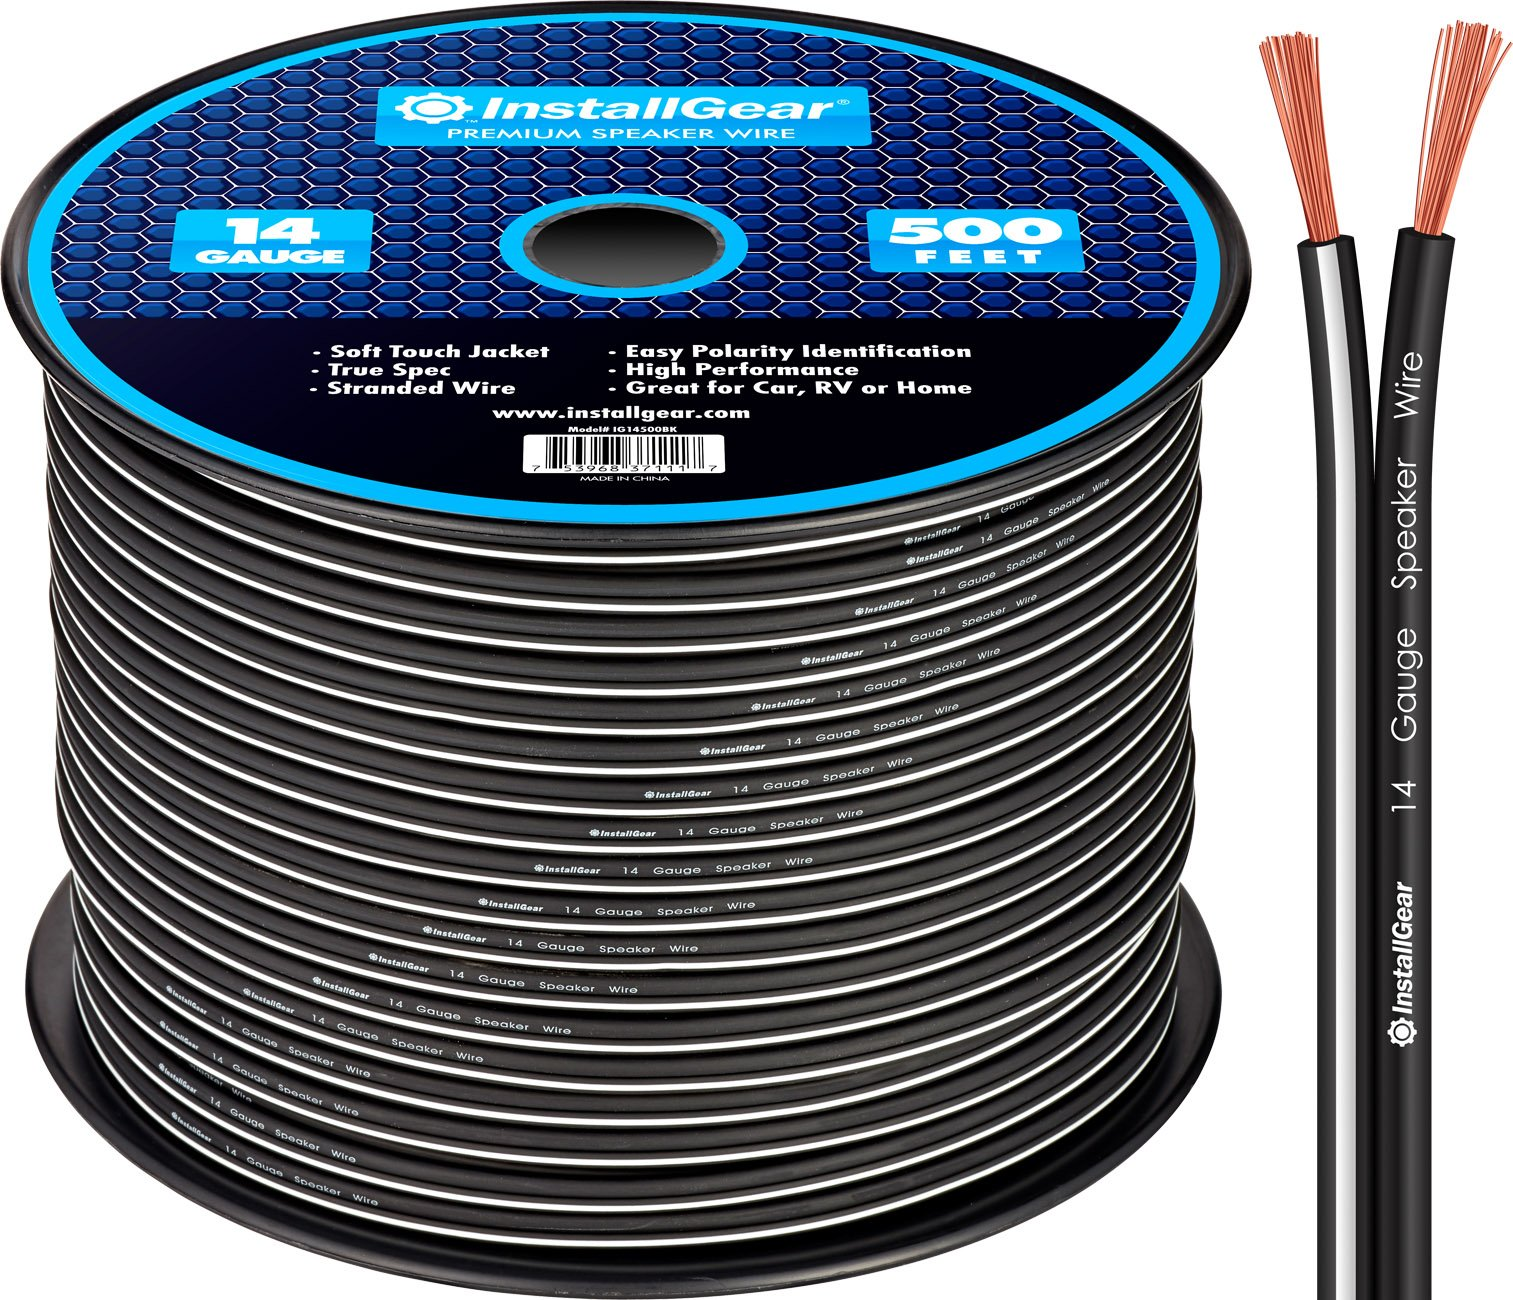 InstallGear 14 Gauge AWG 500ft Speaker Wire Cable - Black